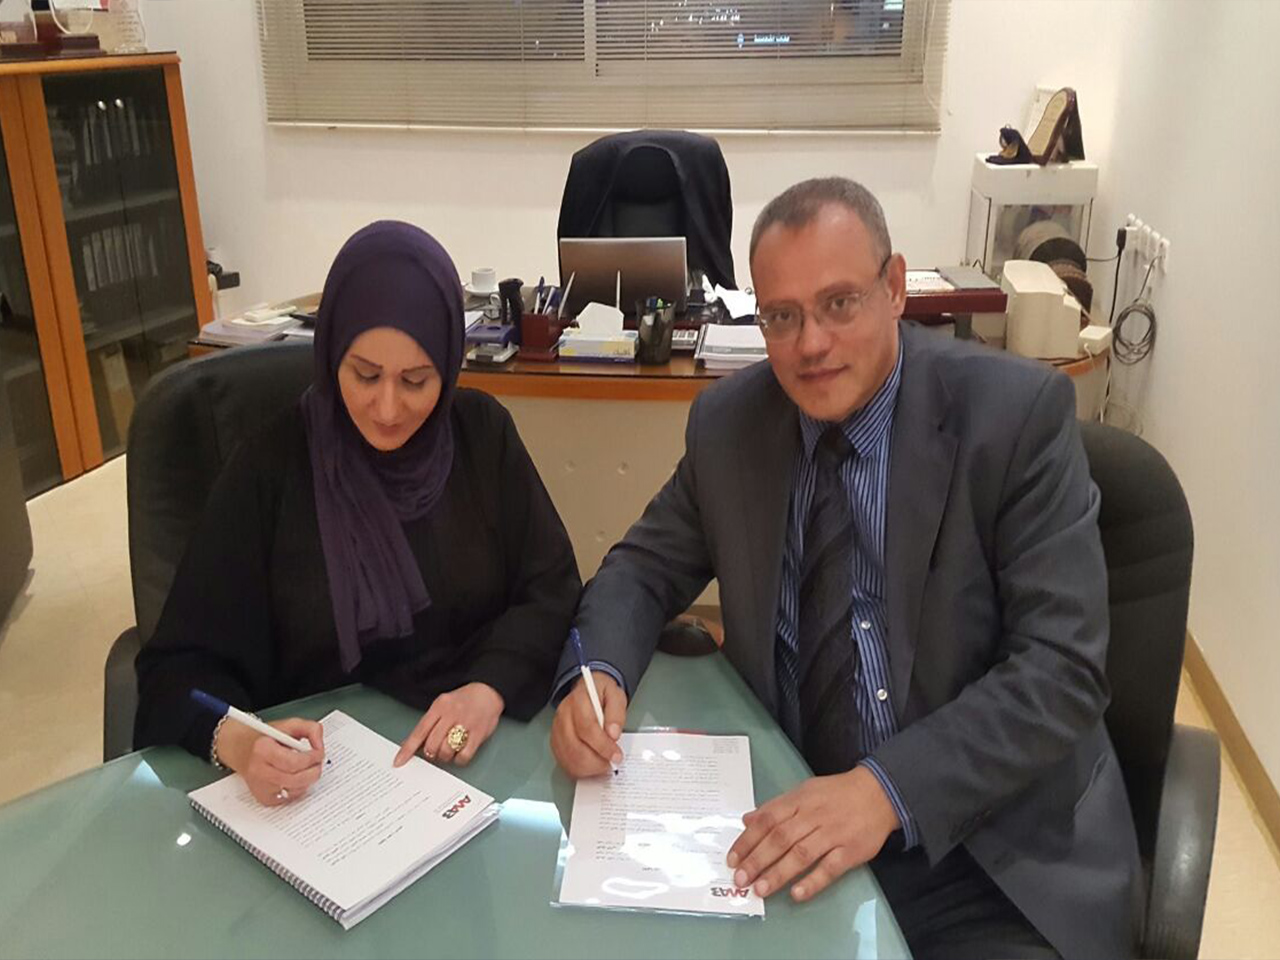 Sign cooperation agreement in training field